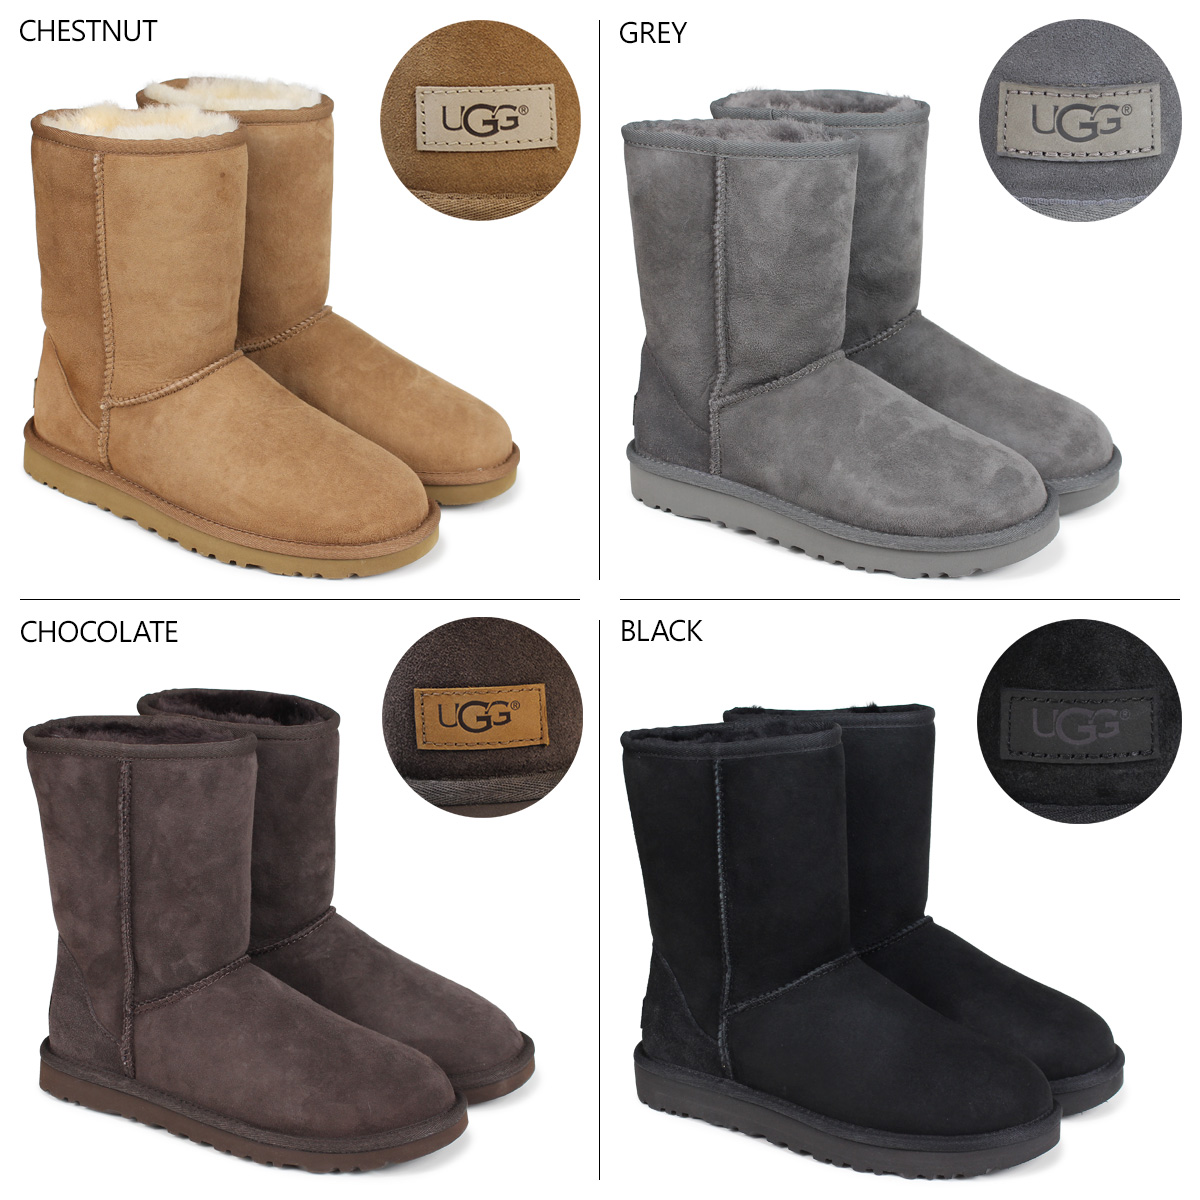 Whats Up Sports Ugg Ugg Classic Short Shearling Boots Womens